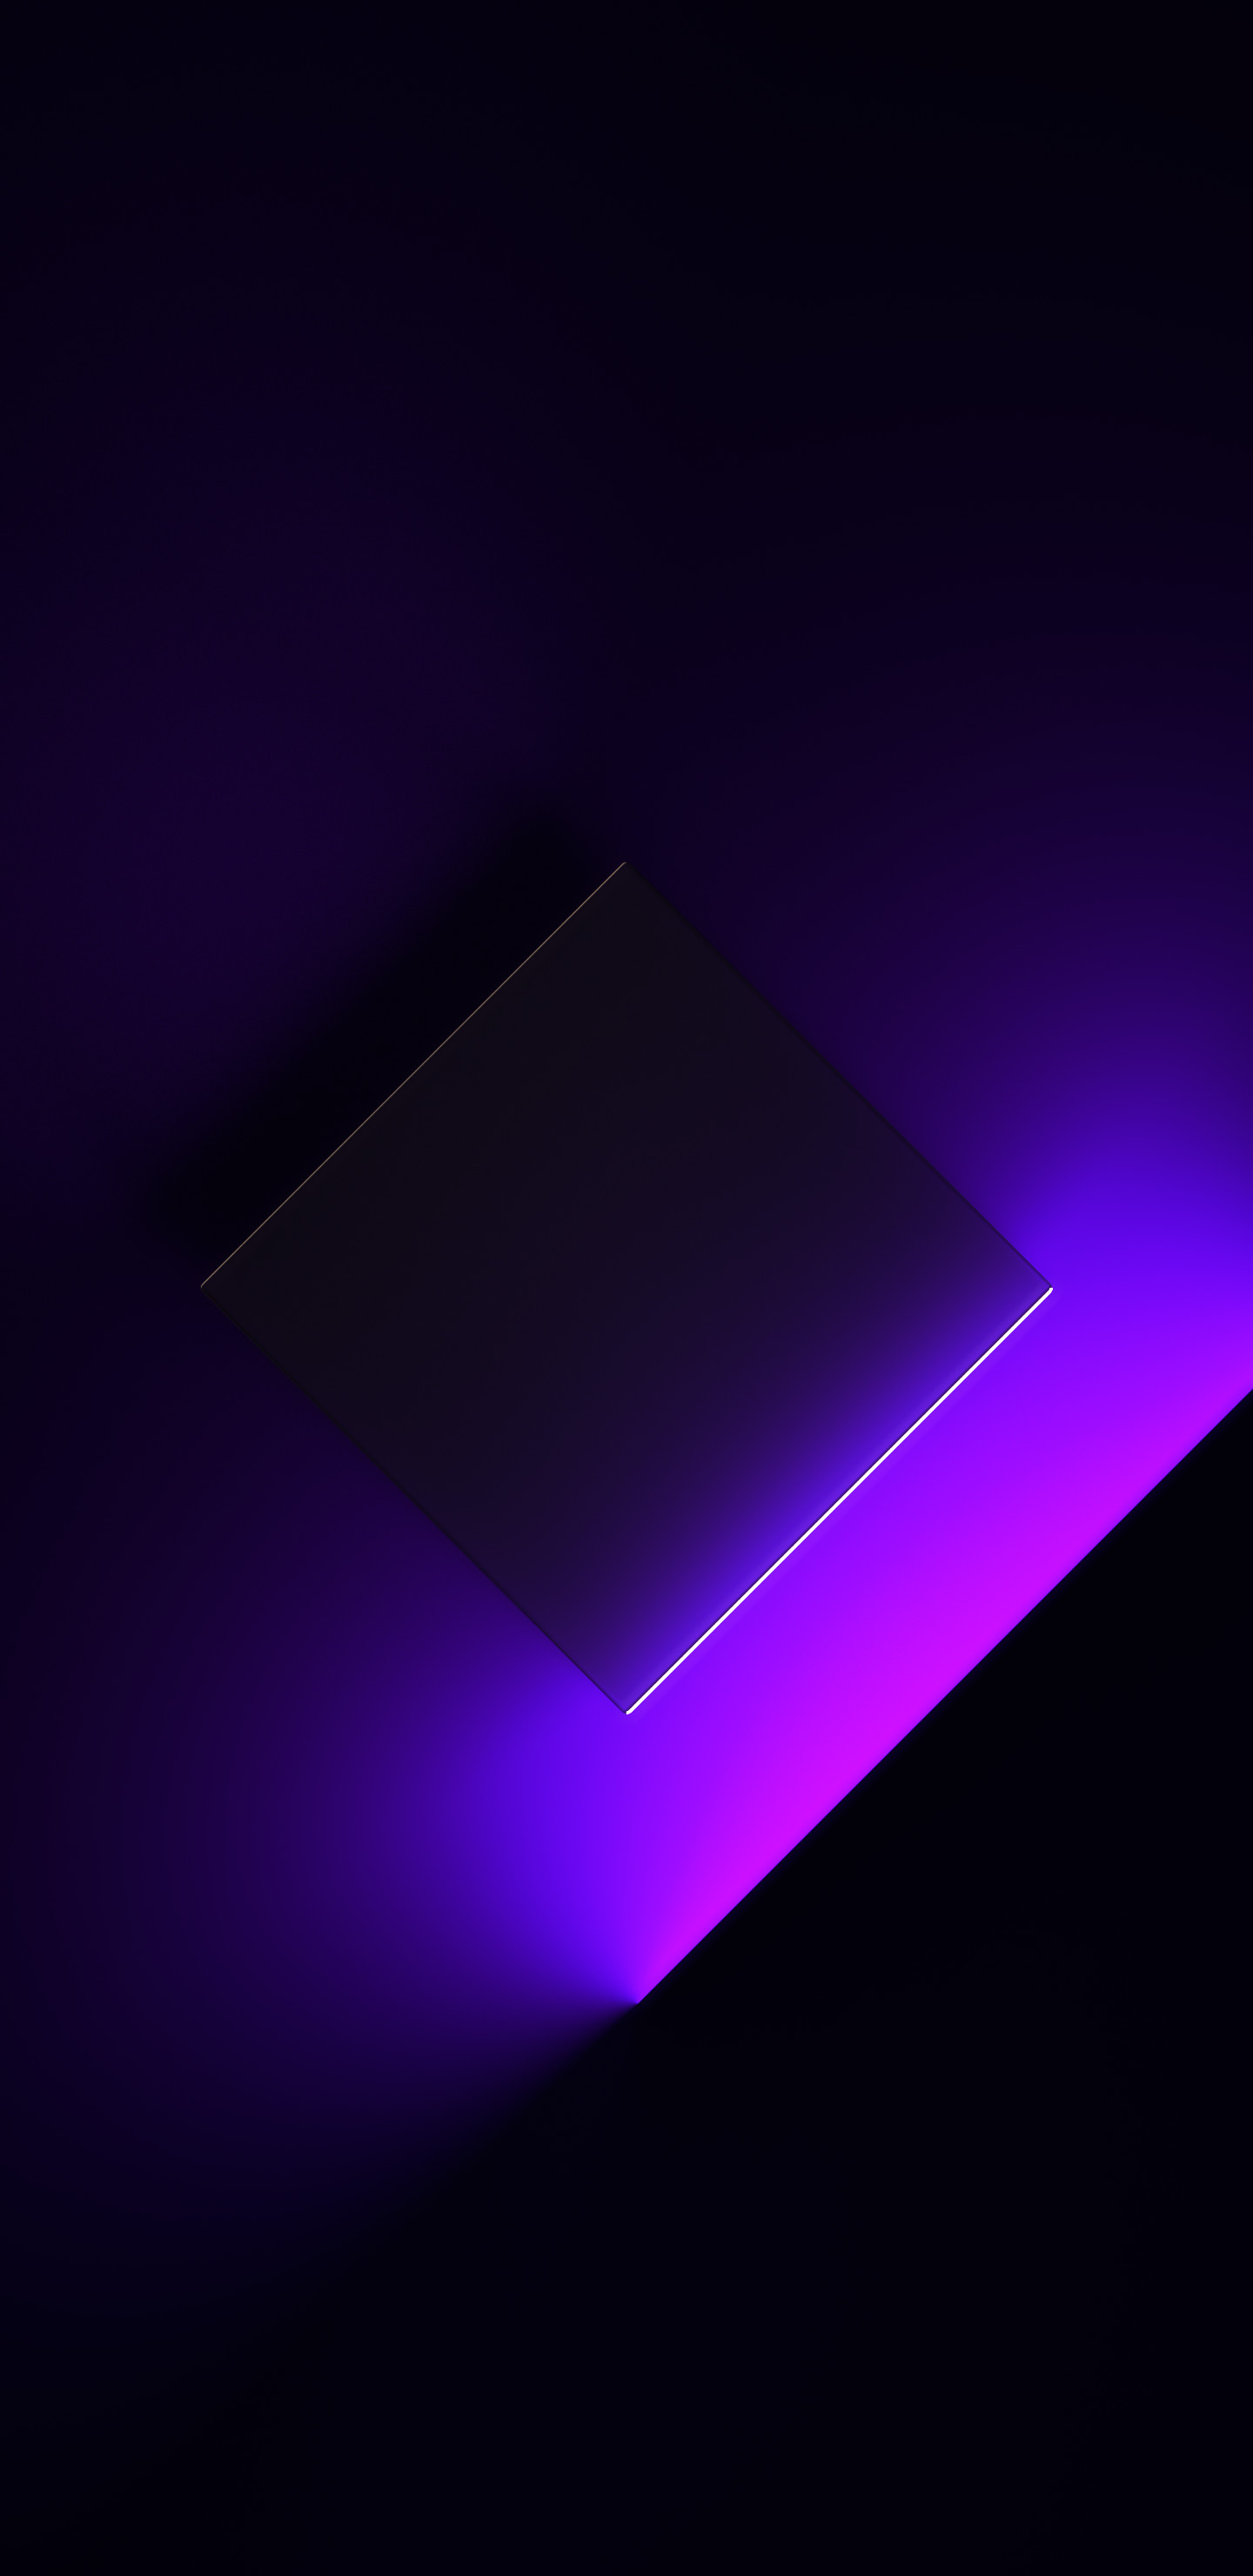 Black and Purple iPhone Wallpaper (81+ images)